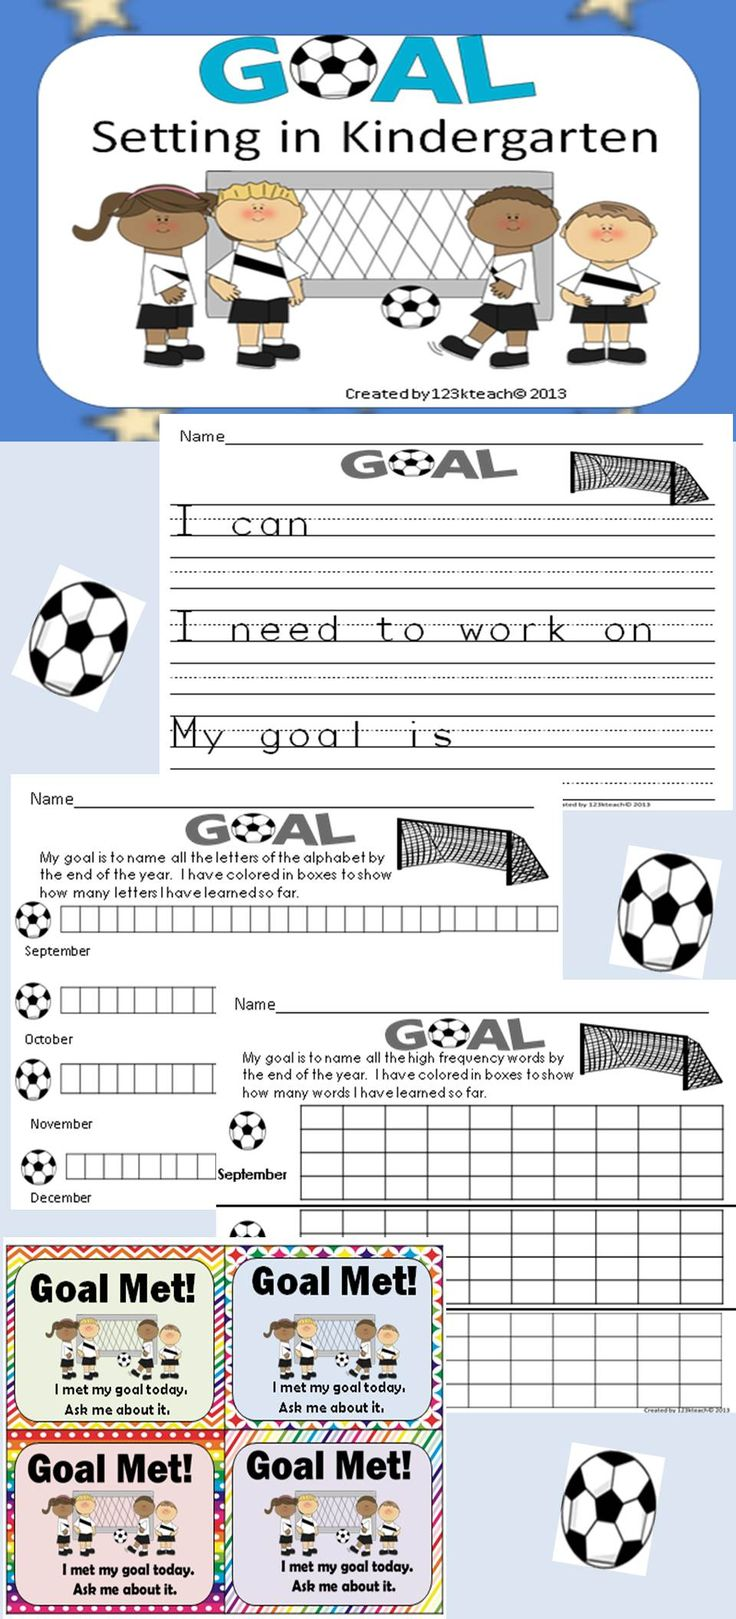 Teach your students how to set goals for the new year. Students will be able to track their own success as they learn new letters, letter sounds, high frequency words, counting, and writing numbers. They will be able to see their own growth over time with these graphs to show their progress.